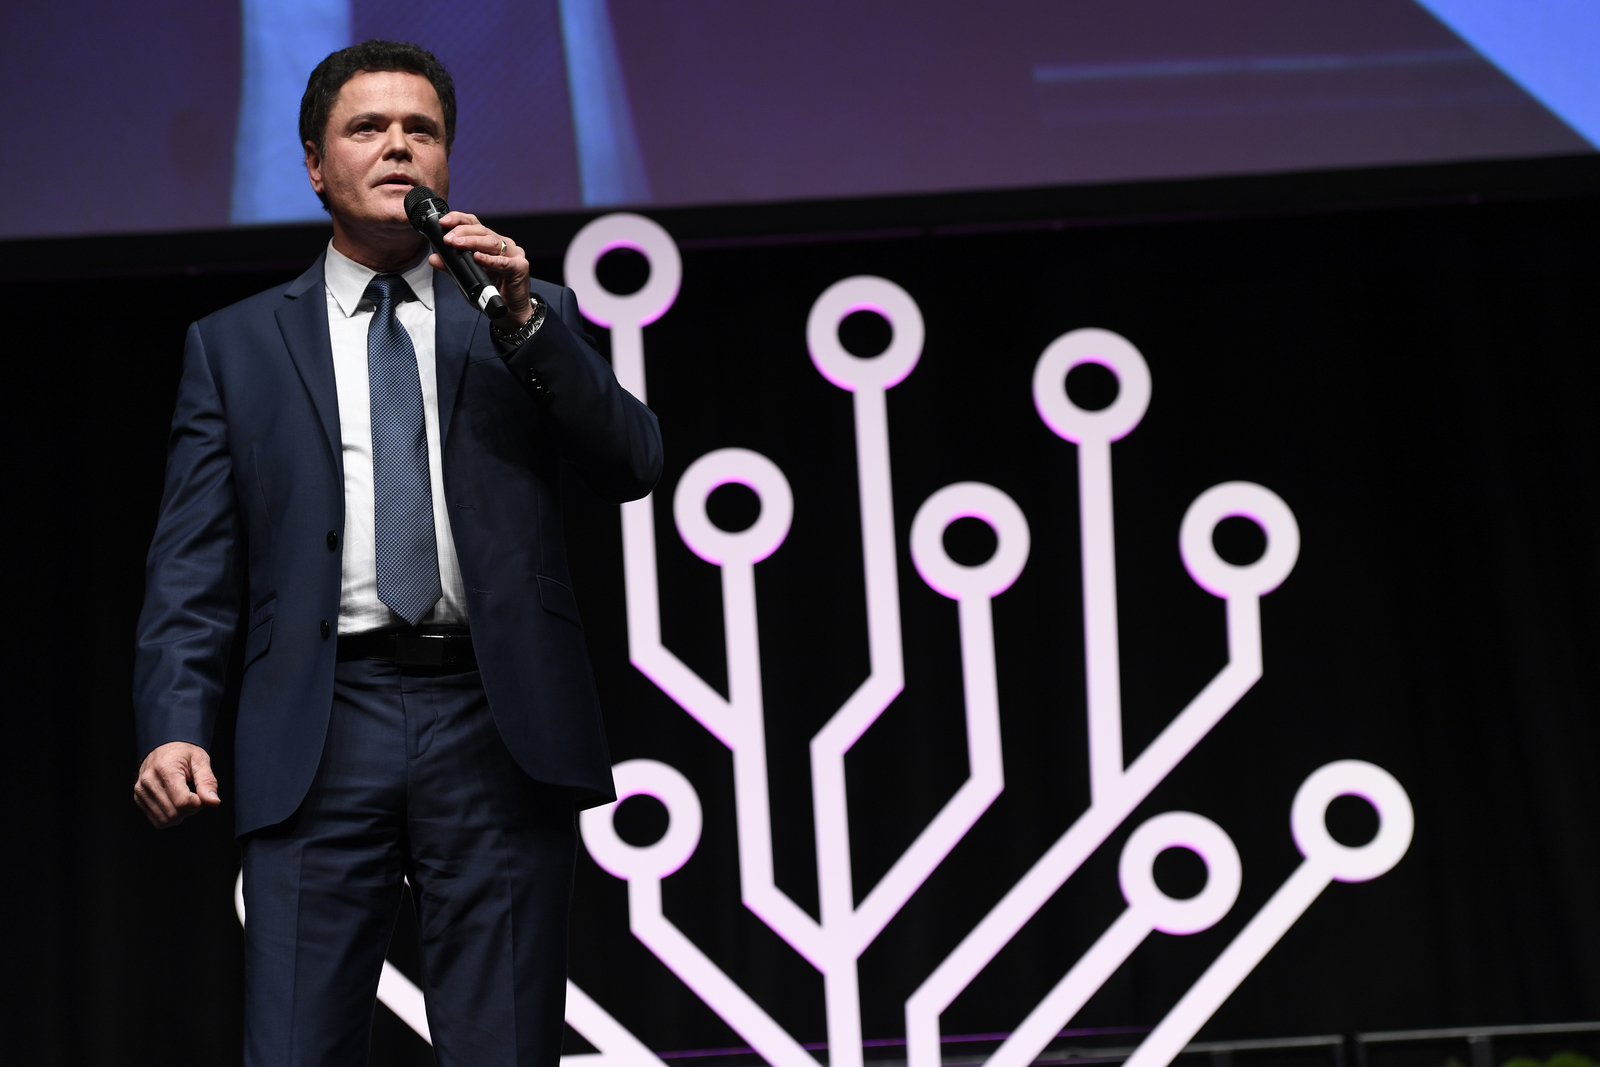 Donny Osmond discusses his personal journey of family discovery during a session at RootsTech London.